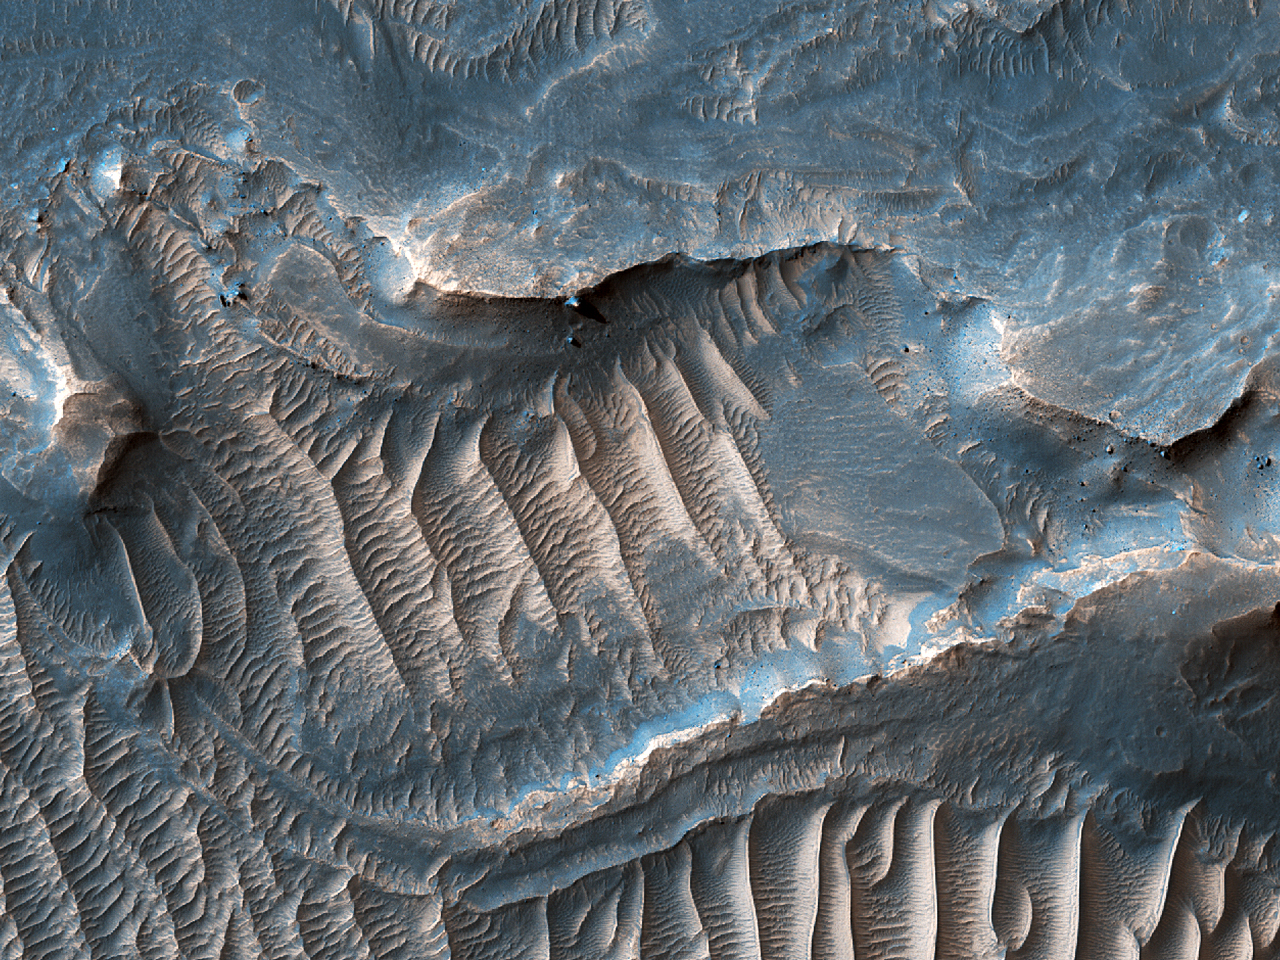 Ripples in Noctis Labyrinthus